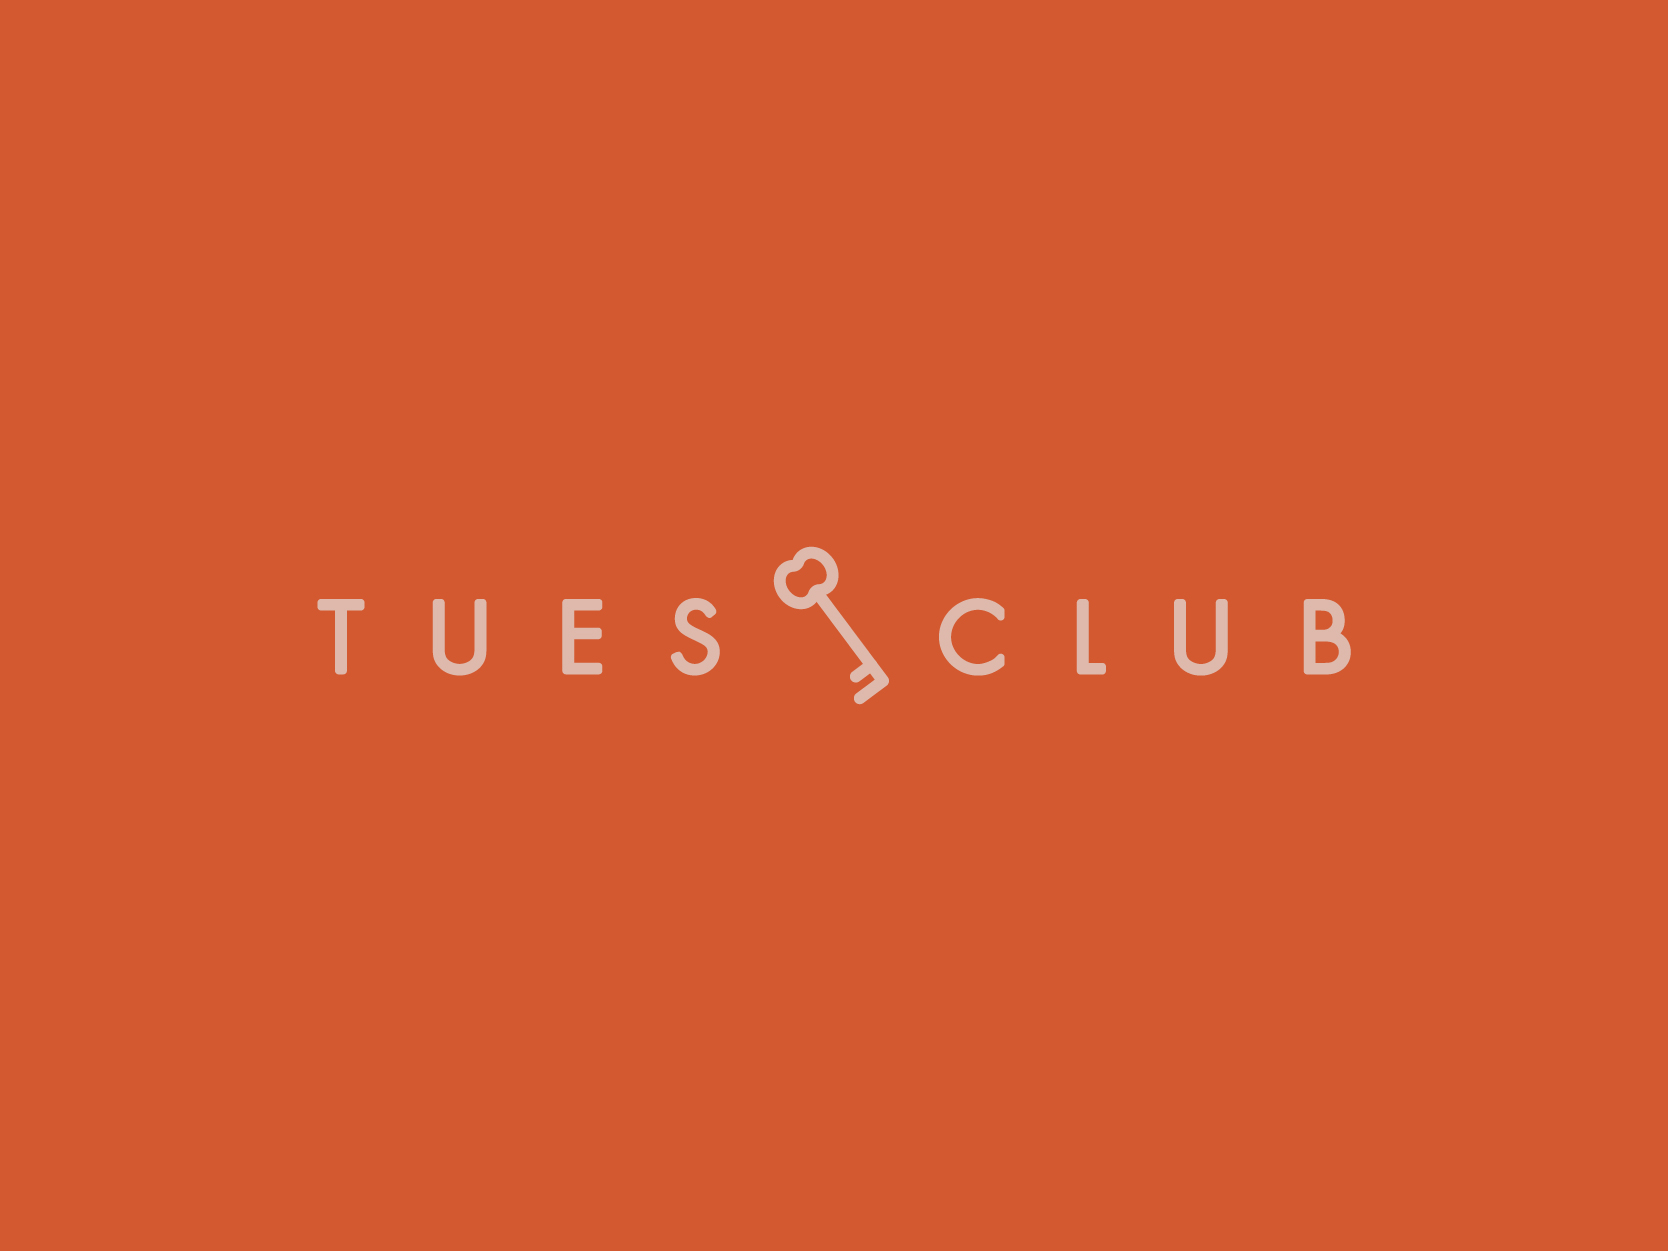 Secondary logo for The Tuesday Club.